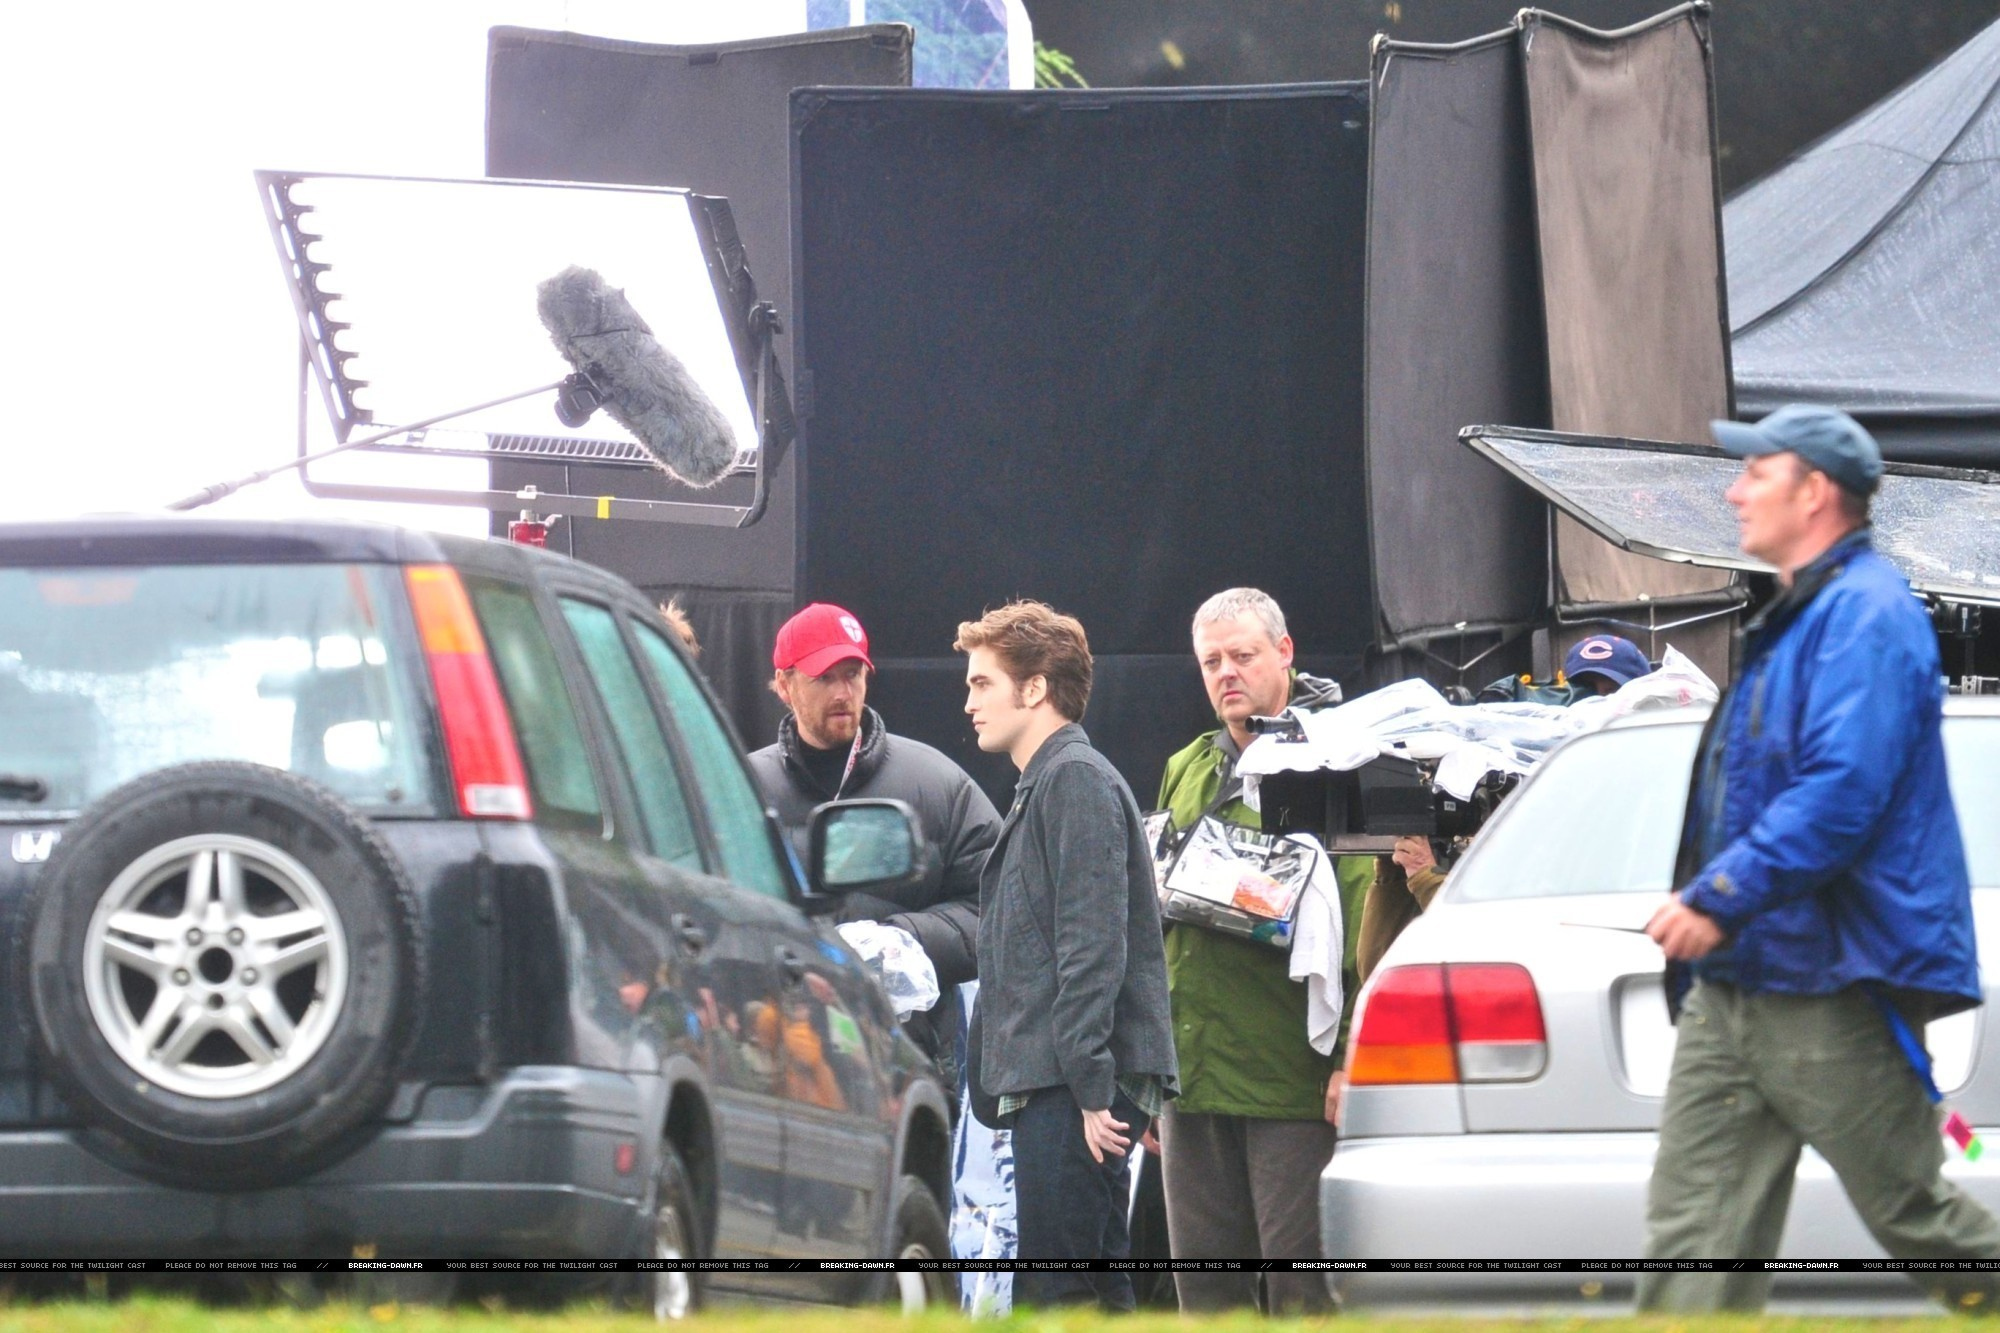 http://images2.fanpop.com/images/photos/8000000/Rob-kristen-on-the-set-of-Eclipse-yesterday-twilight-series-8080076-2000-1333.jpg